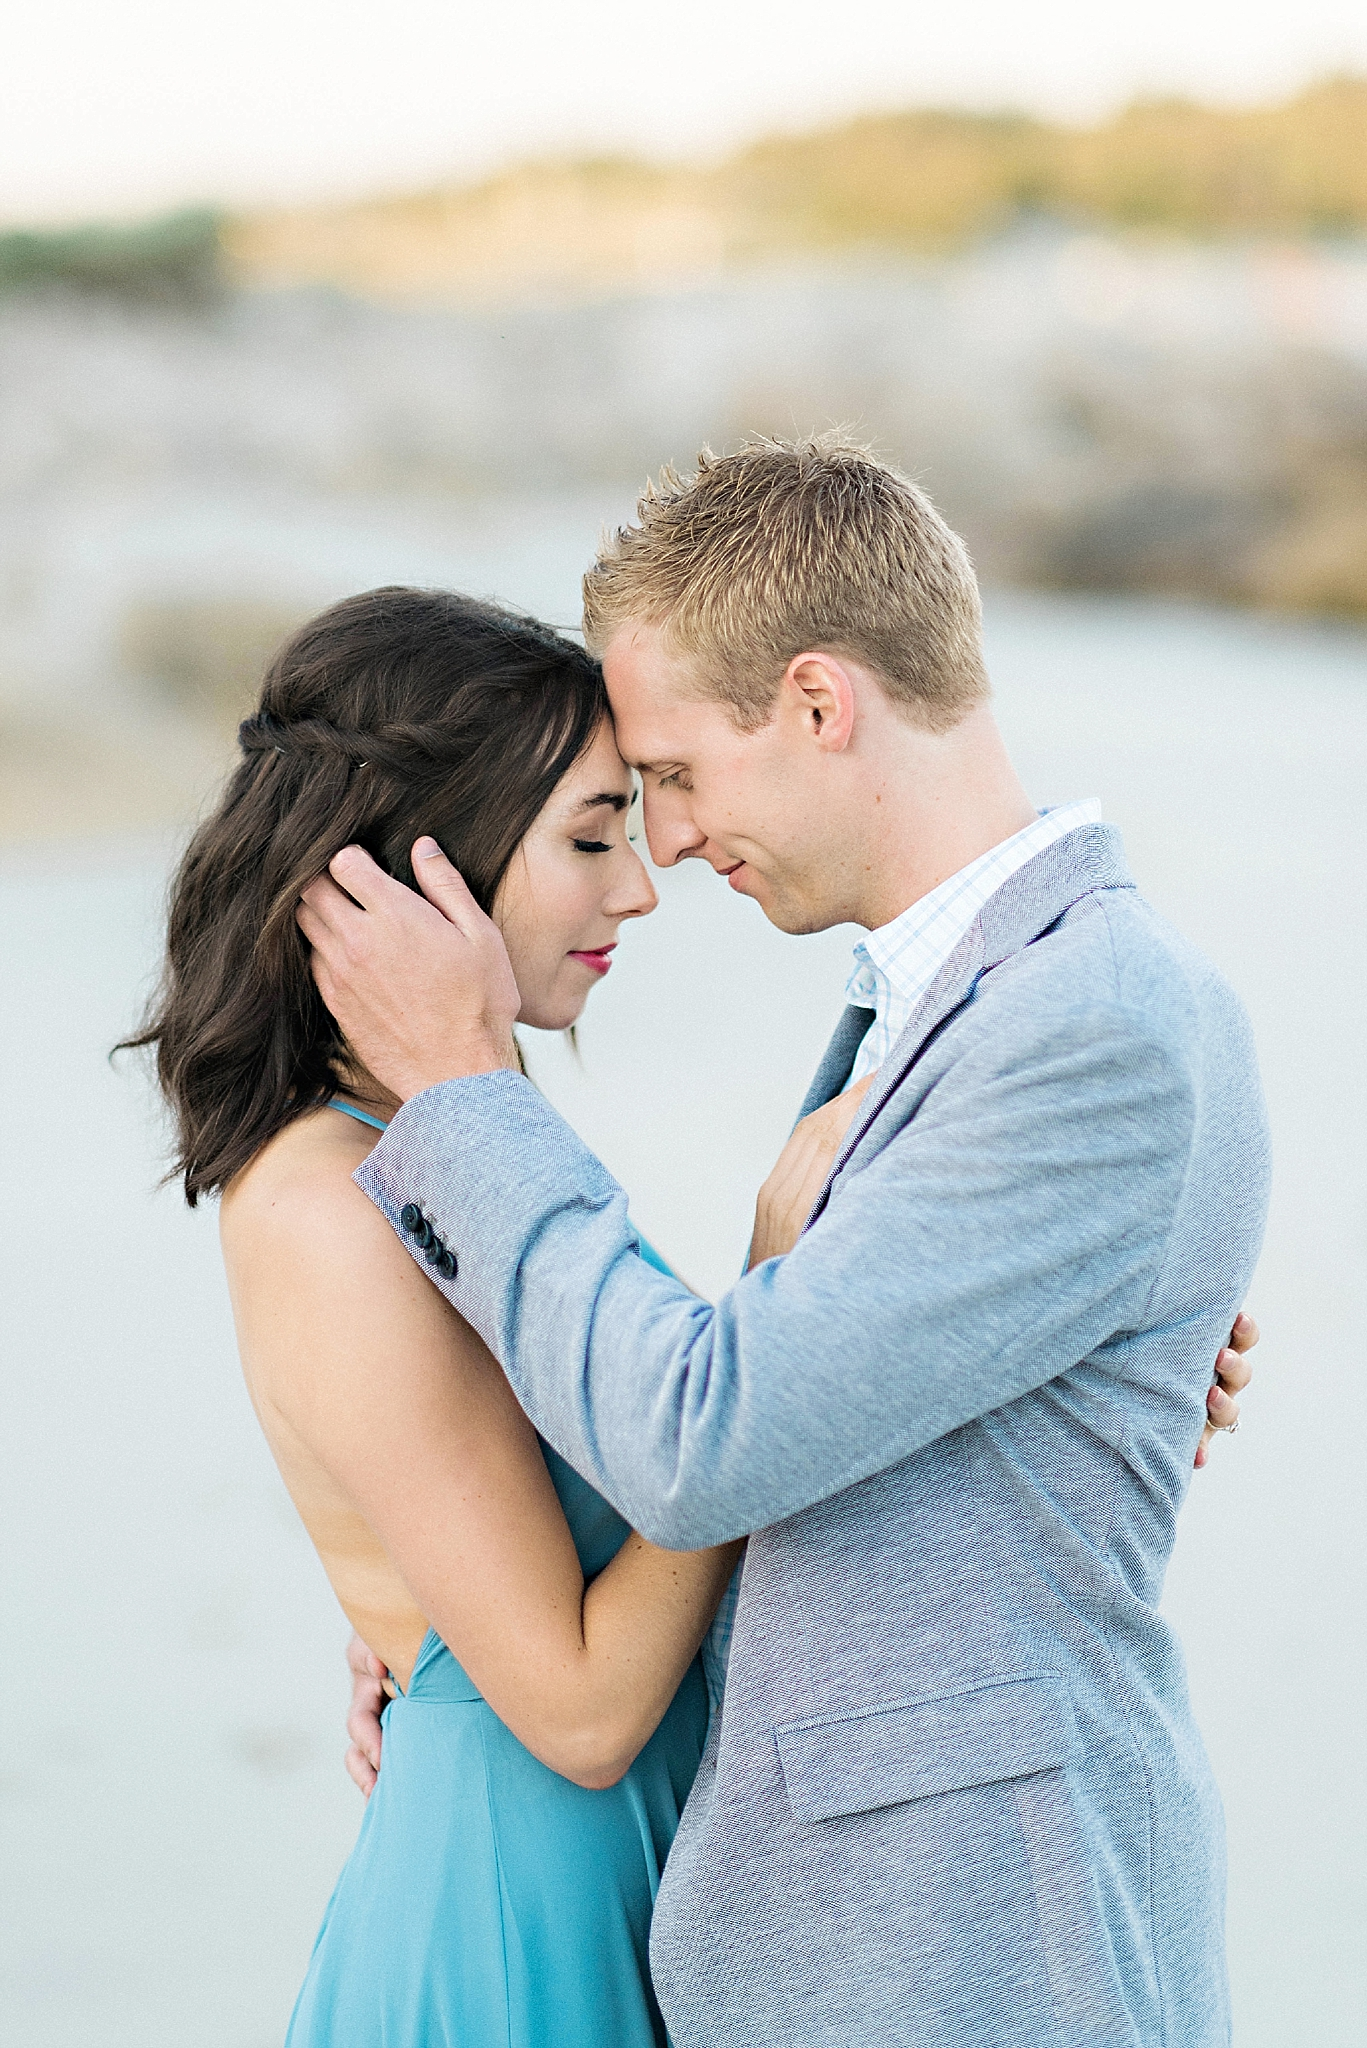 Romantic Seaside Beach Engagement Shoot in Lulu's long flowy maxy dress_027.jpg